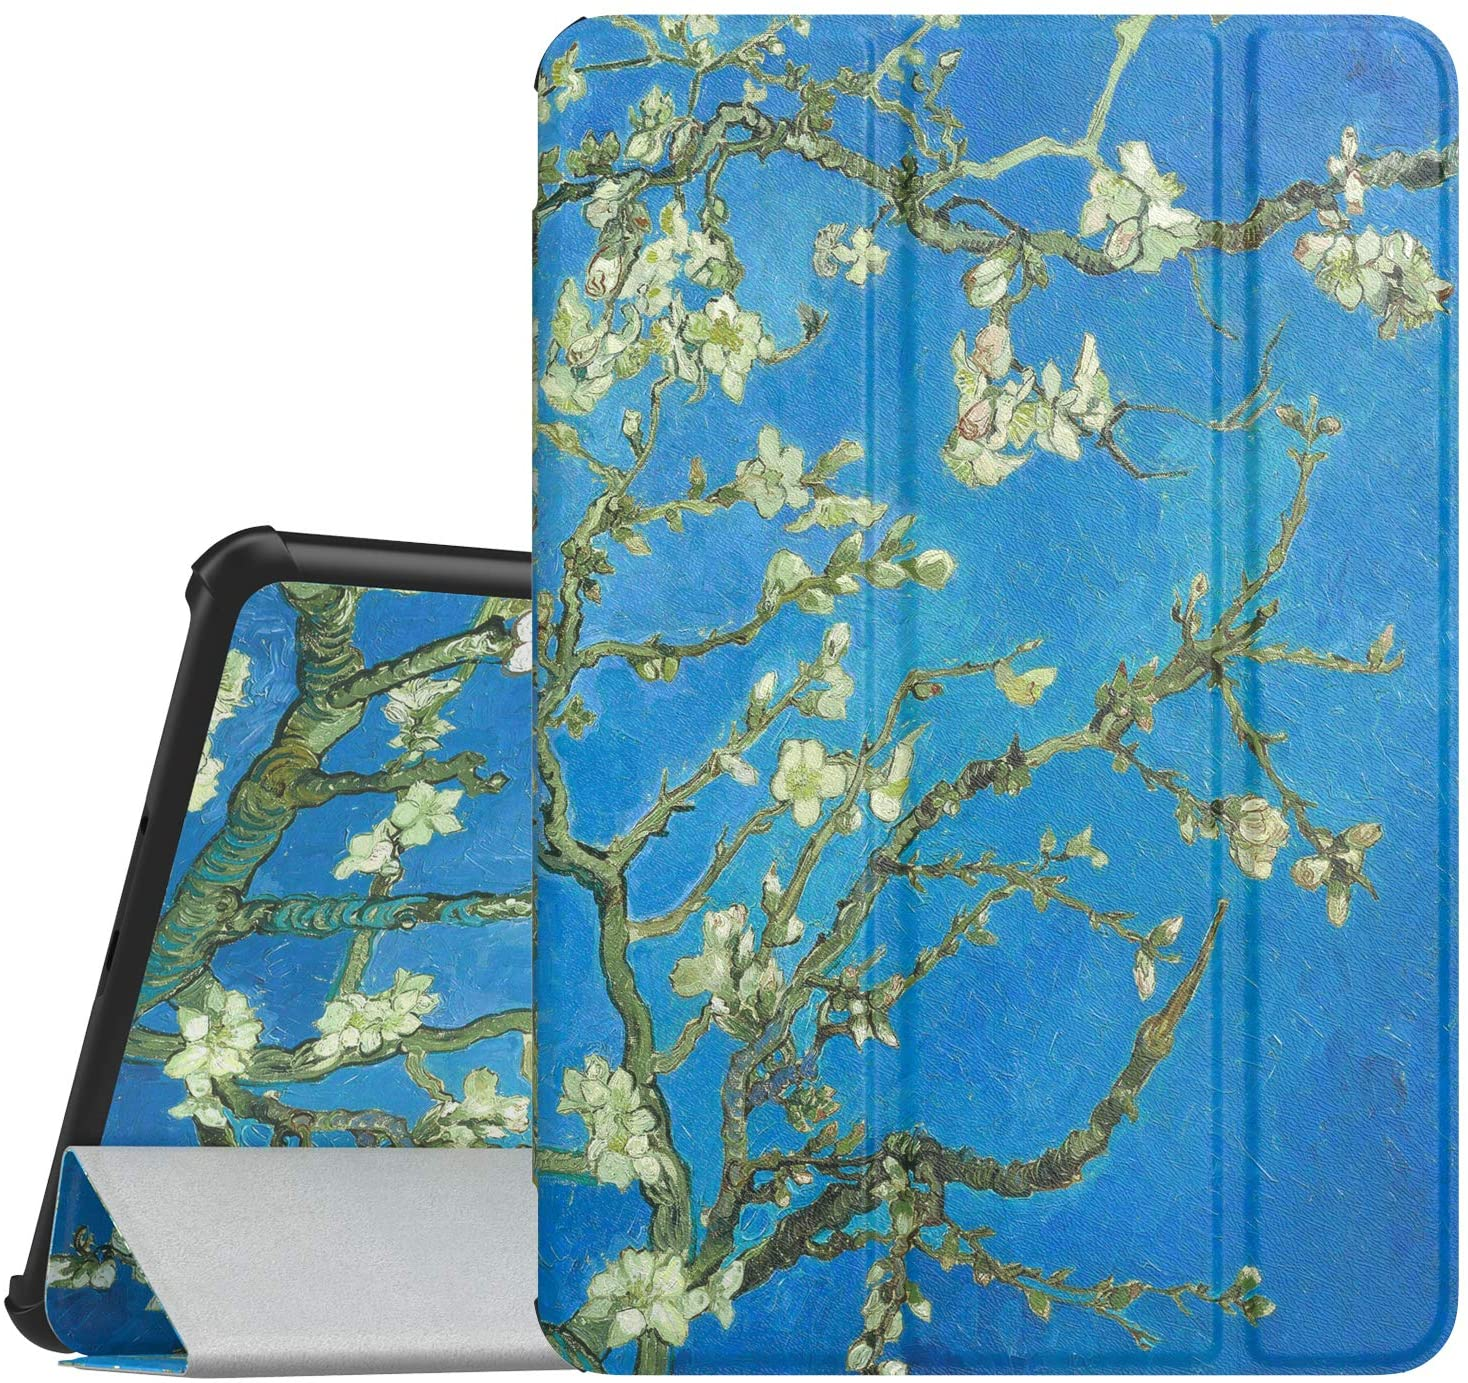 MoKo Case for Samsung Galaxy Tab S4 10.5, Ultra Lightweight Slim-Shell Stand Cover Case with Auto Wake/Sleep Function for Galaxy Tab S4 10.5 Inch (SM-T830 Wi-Fi/SM-T835 4G LTE) Tablet,Almond Blossom